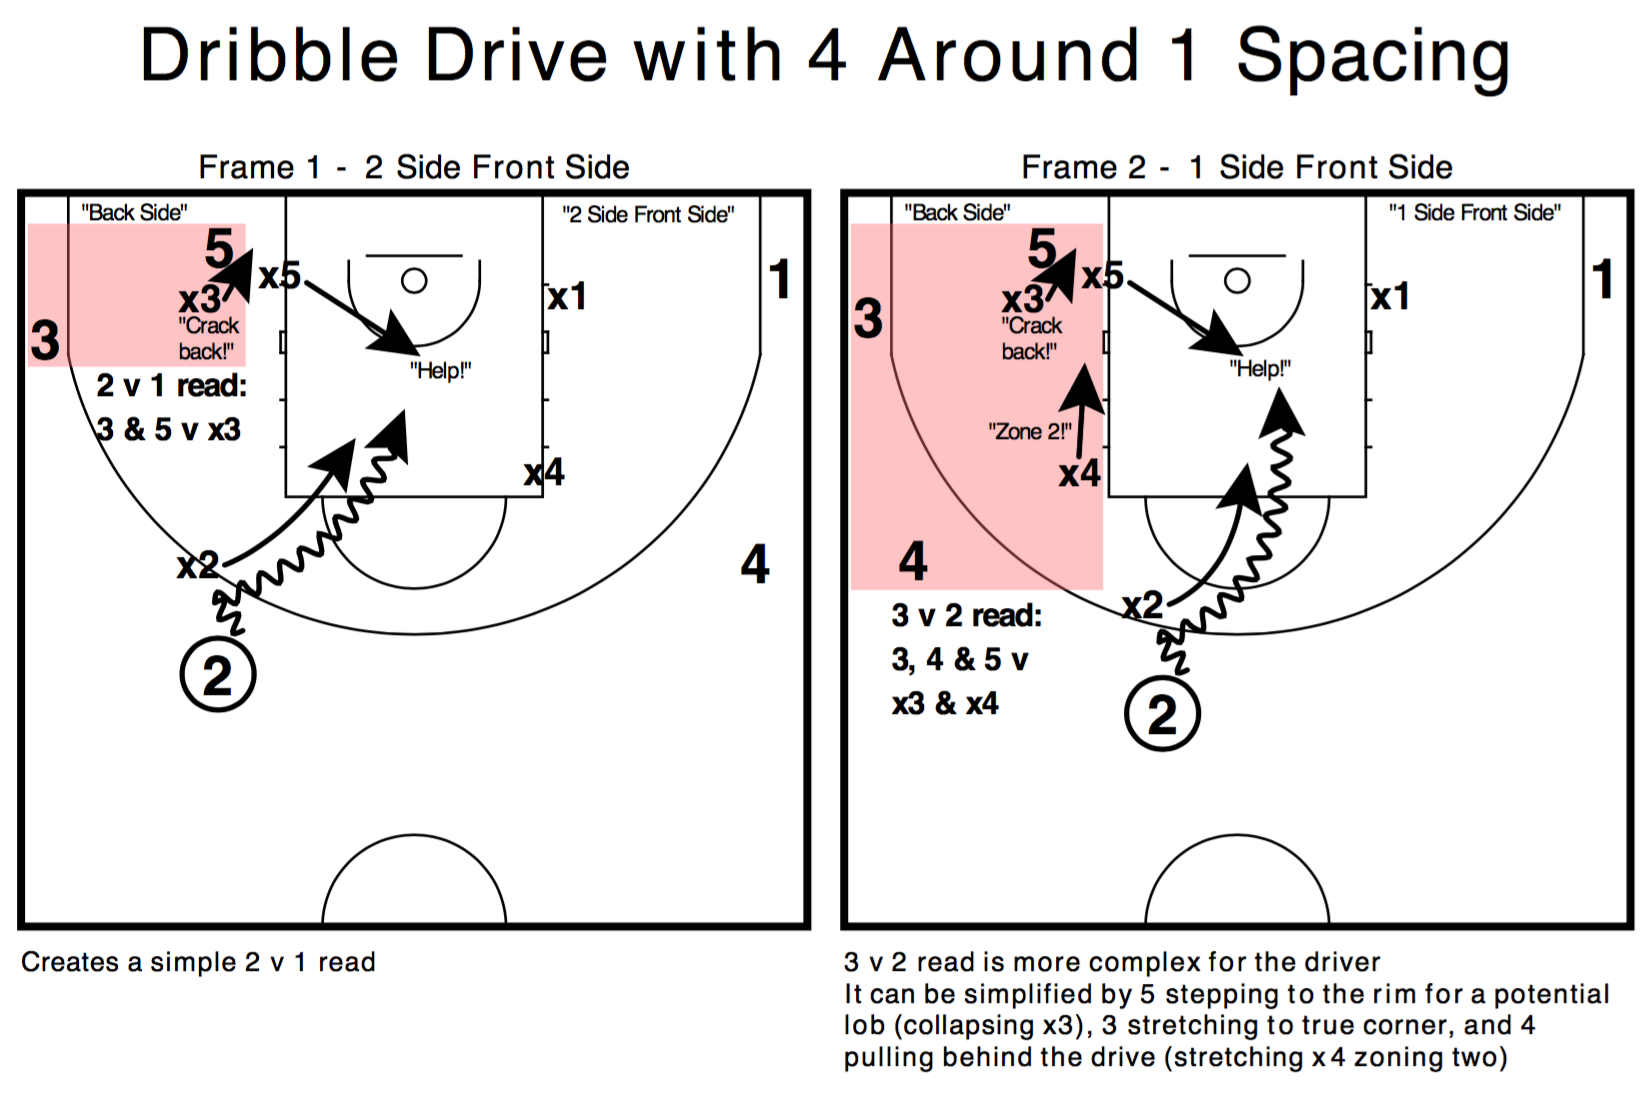 Dribble Drive with 4 Around 1 Spacing